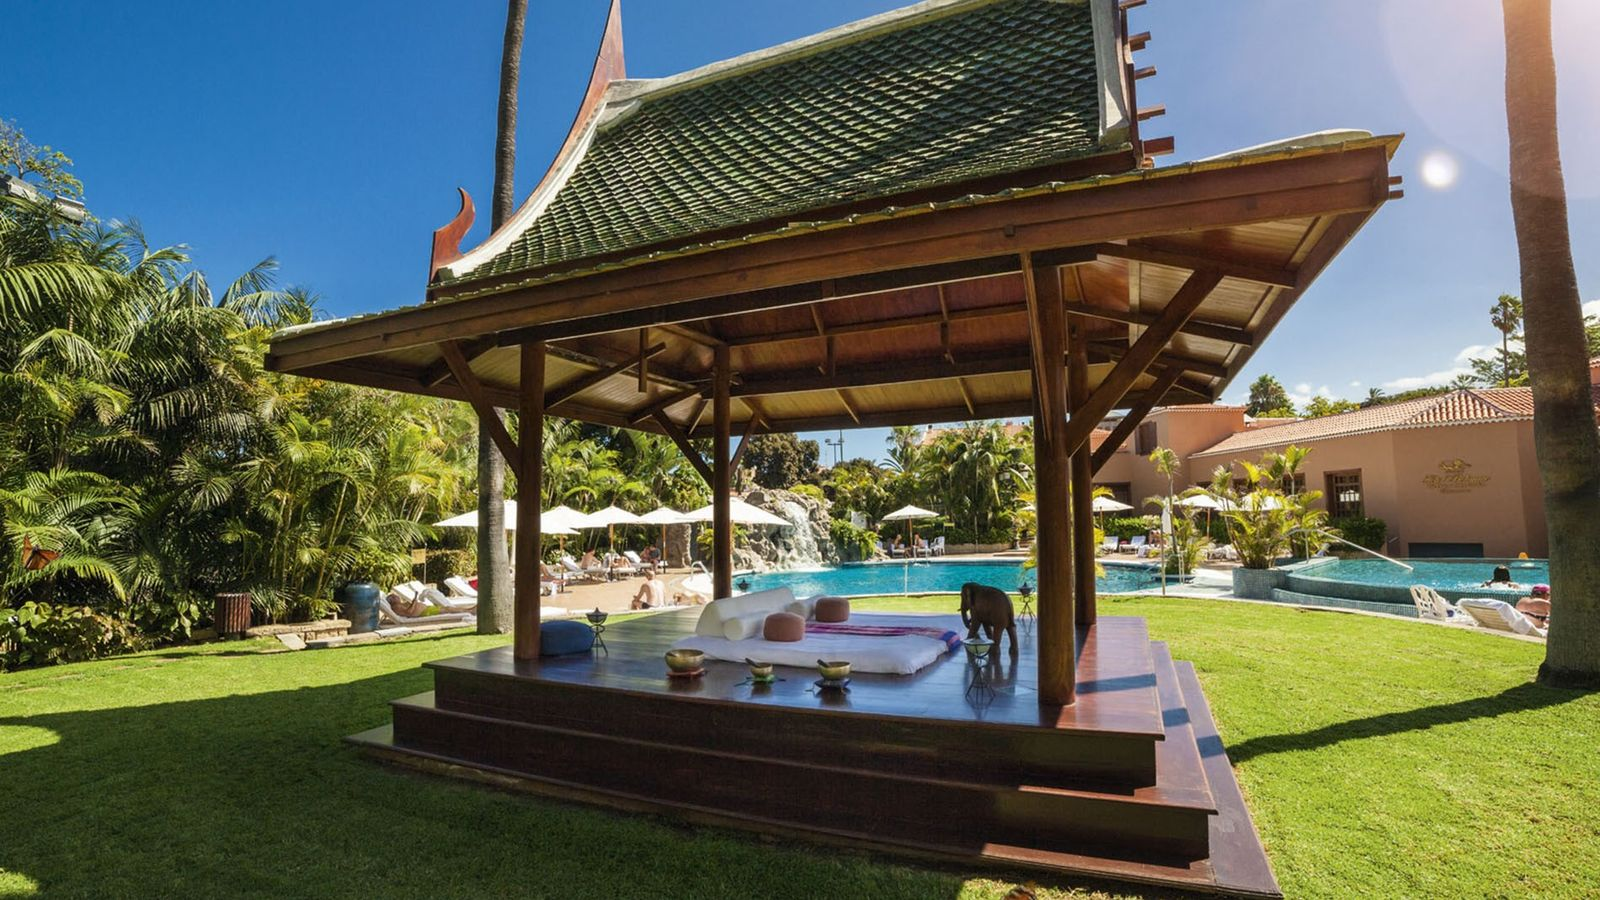 Outdoors space with a pool at Hotel Botánico & The Oriental Spa Garden